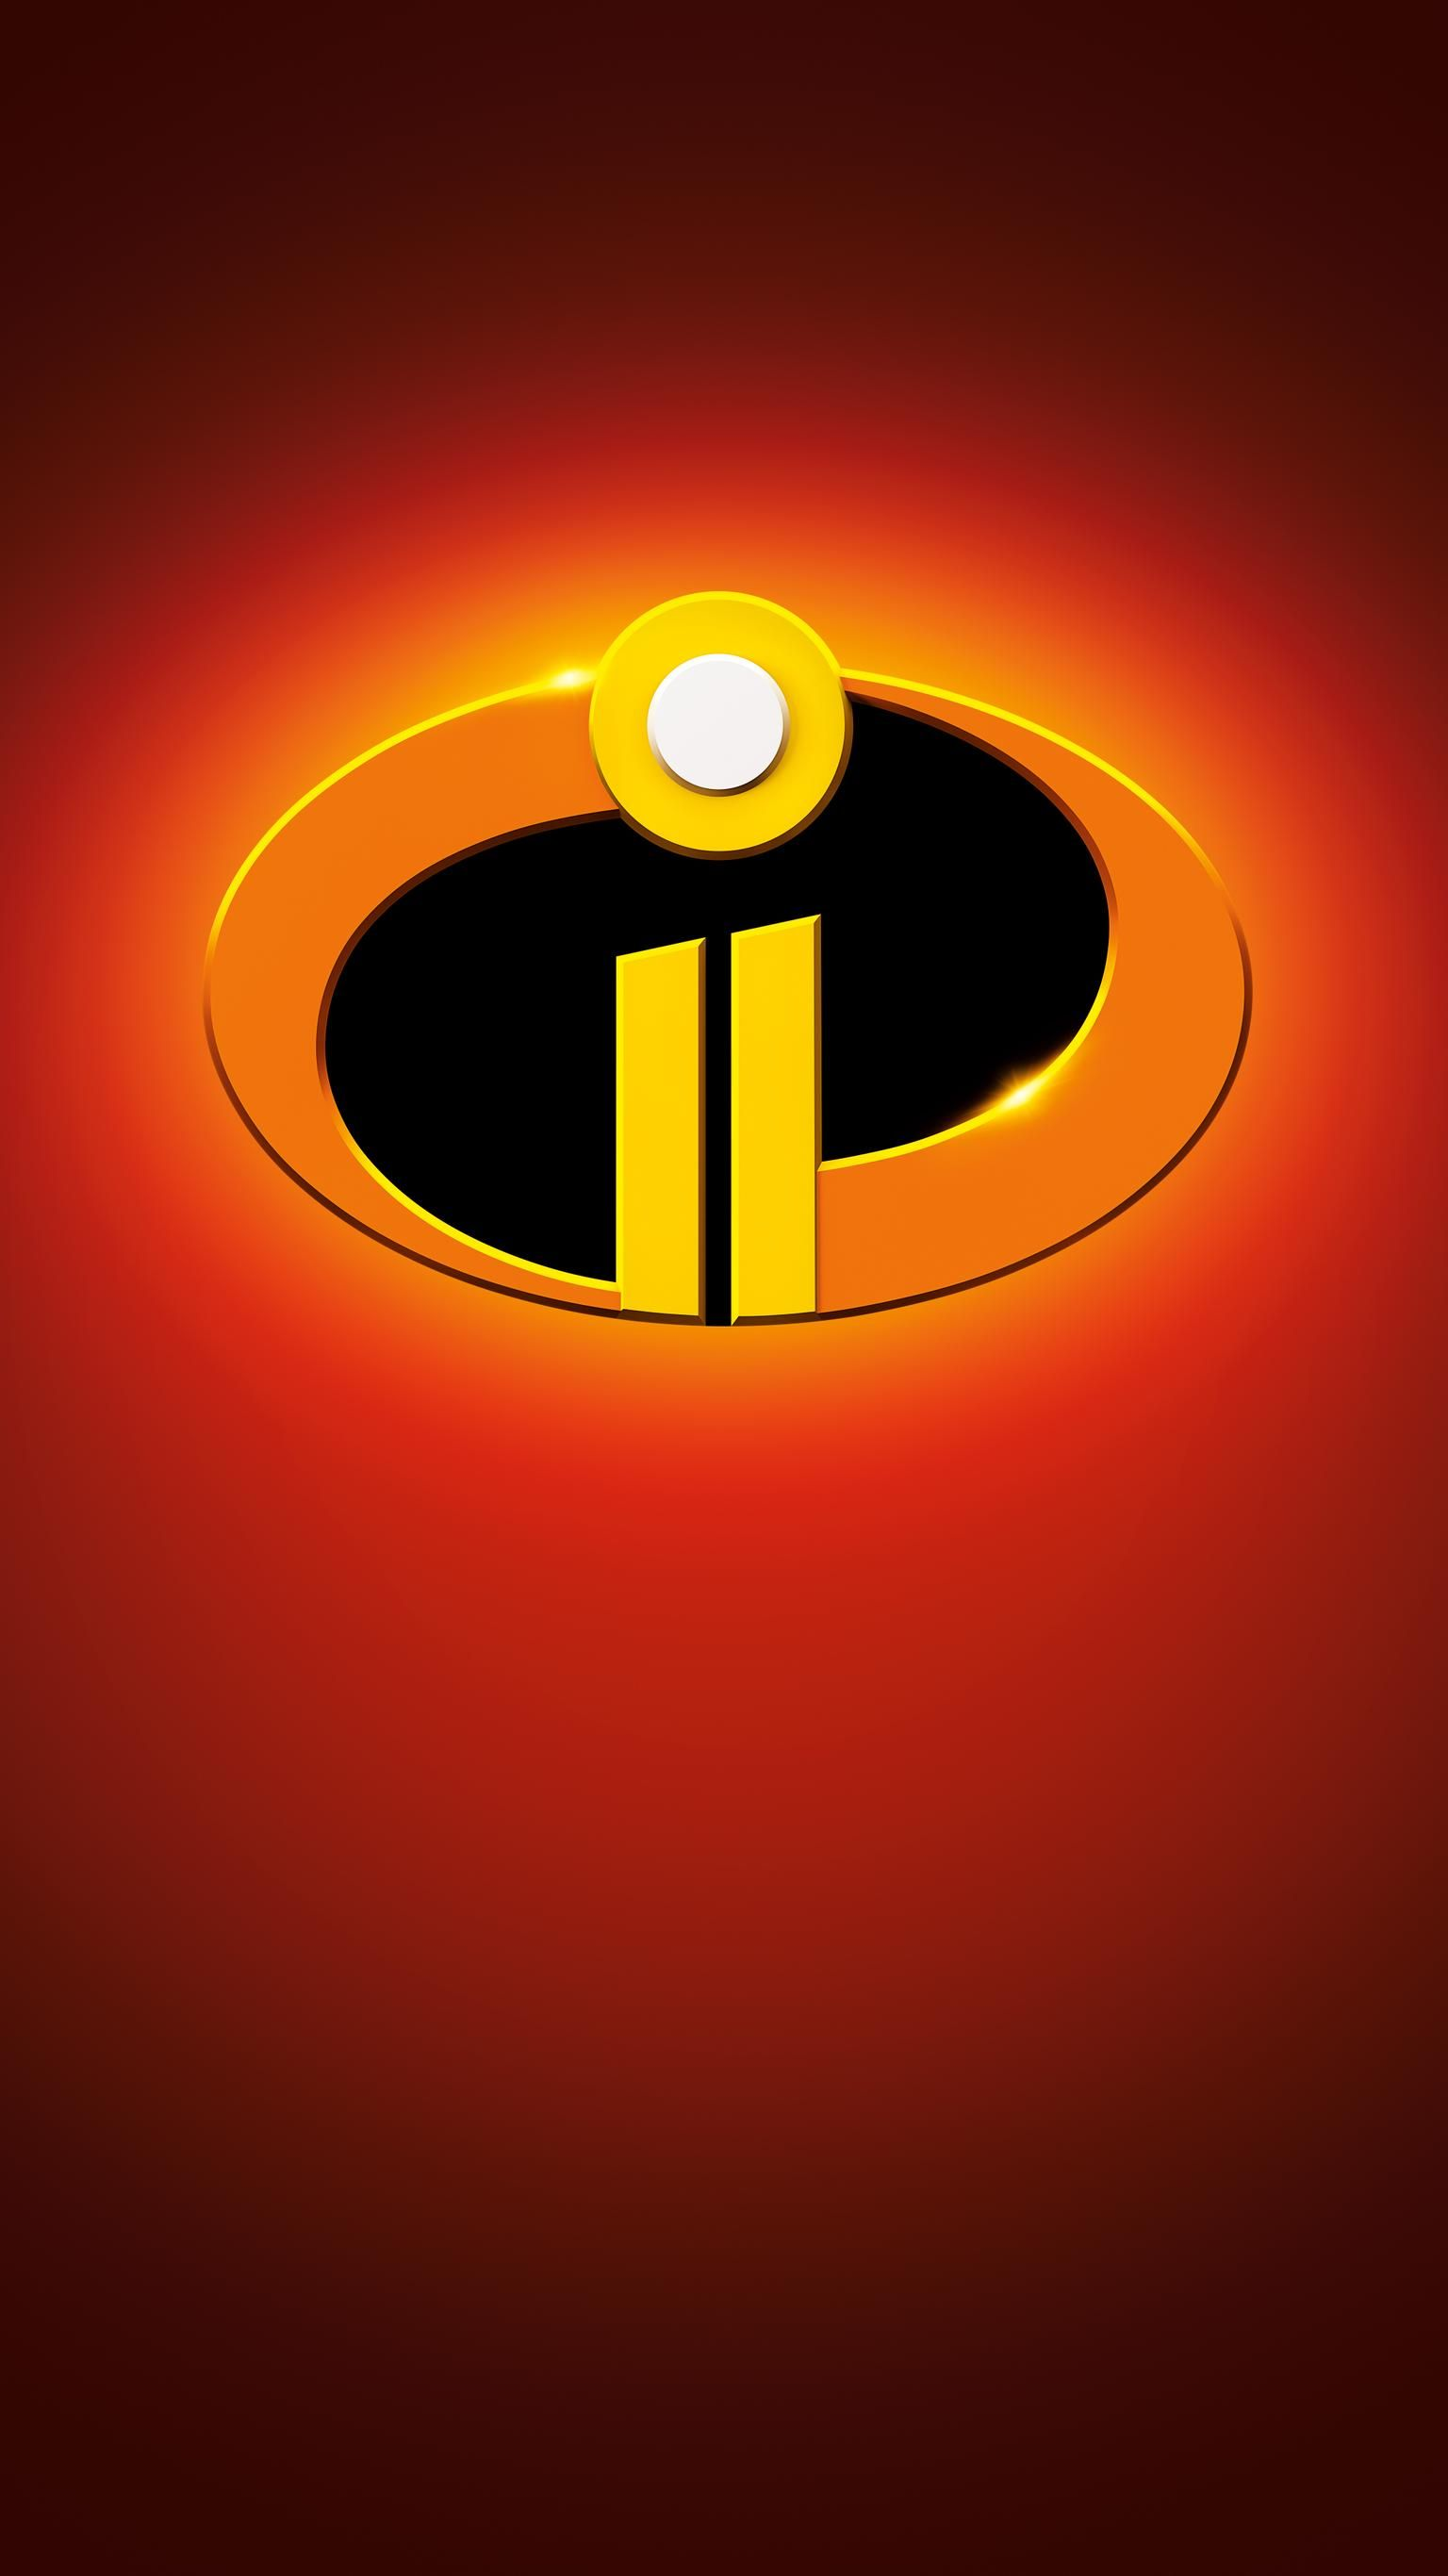 Incredibles 2 (2018) Phone Wallpaper in 2019 | Wallpapers | Wallpaper iphone disney, Incredibles ...